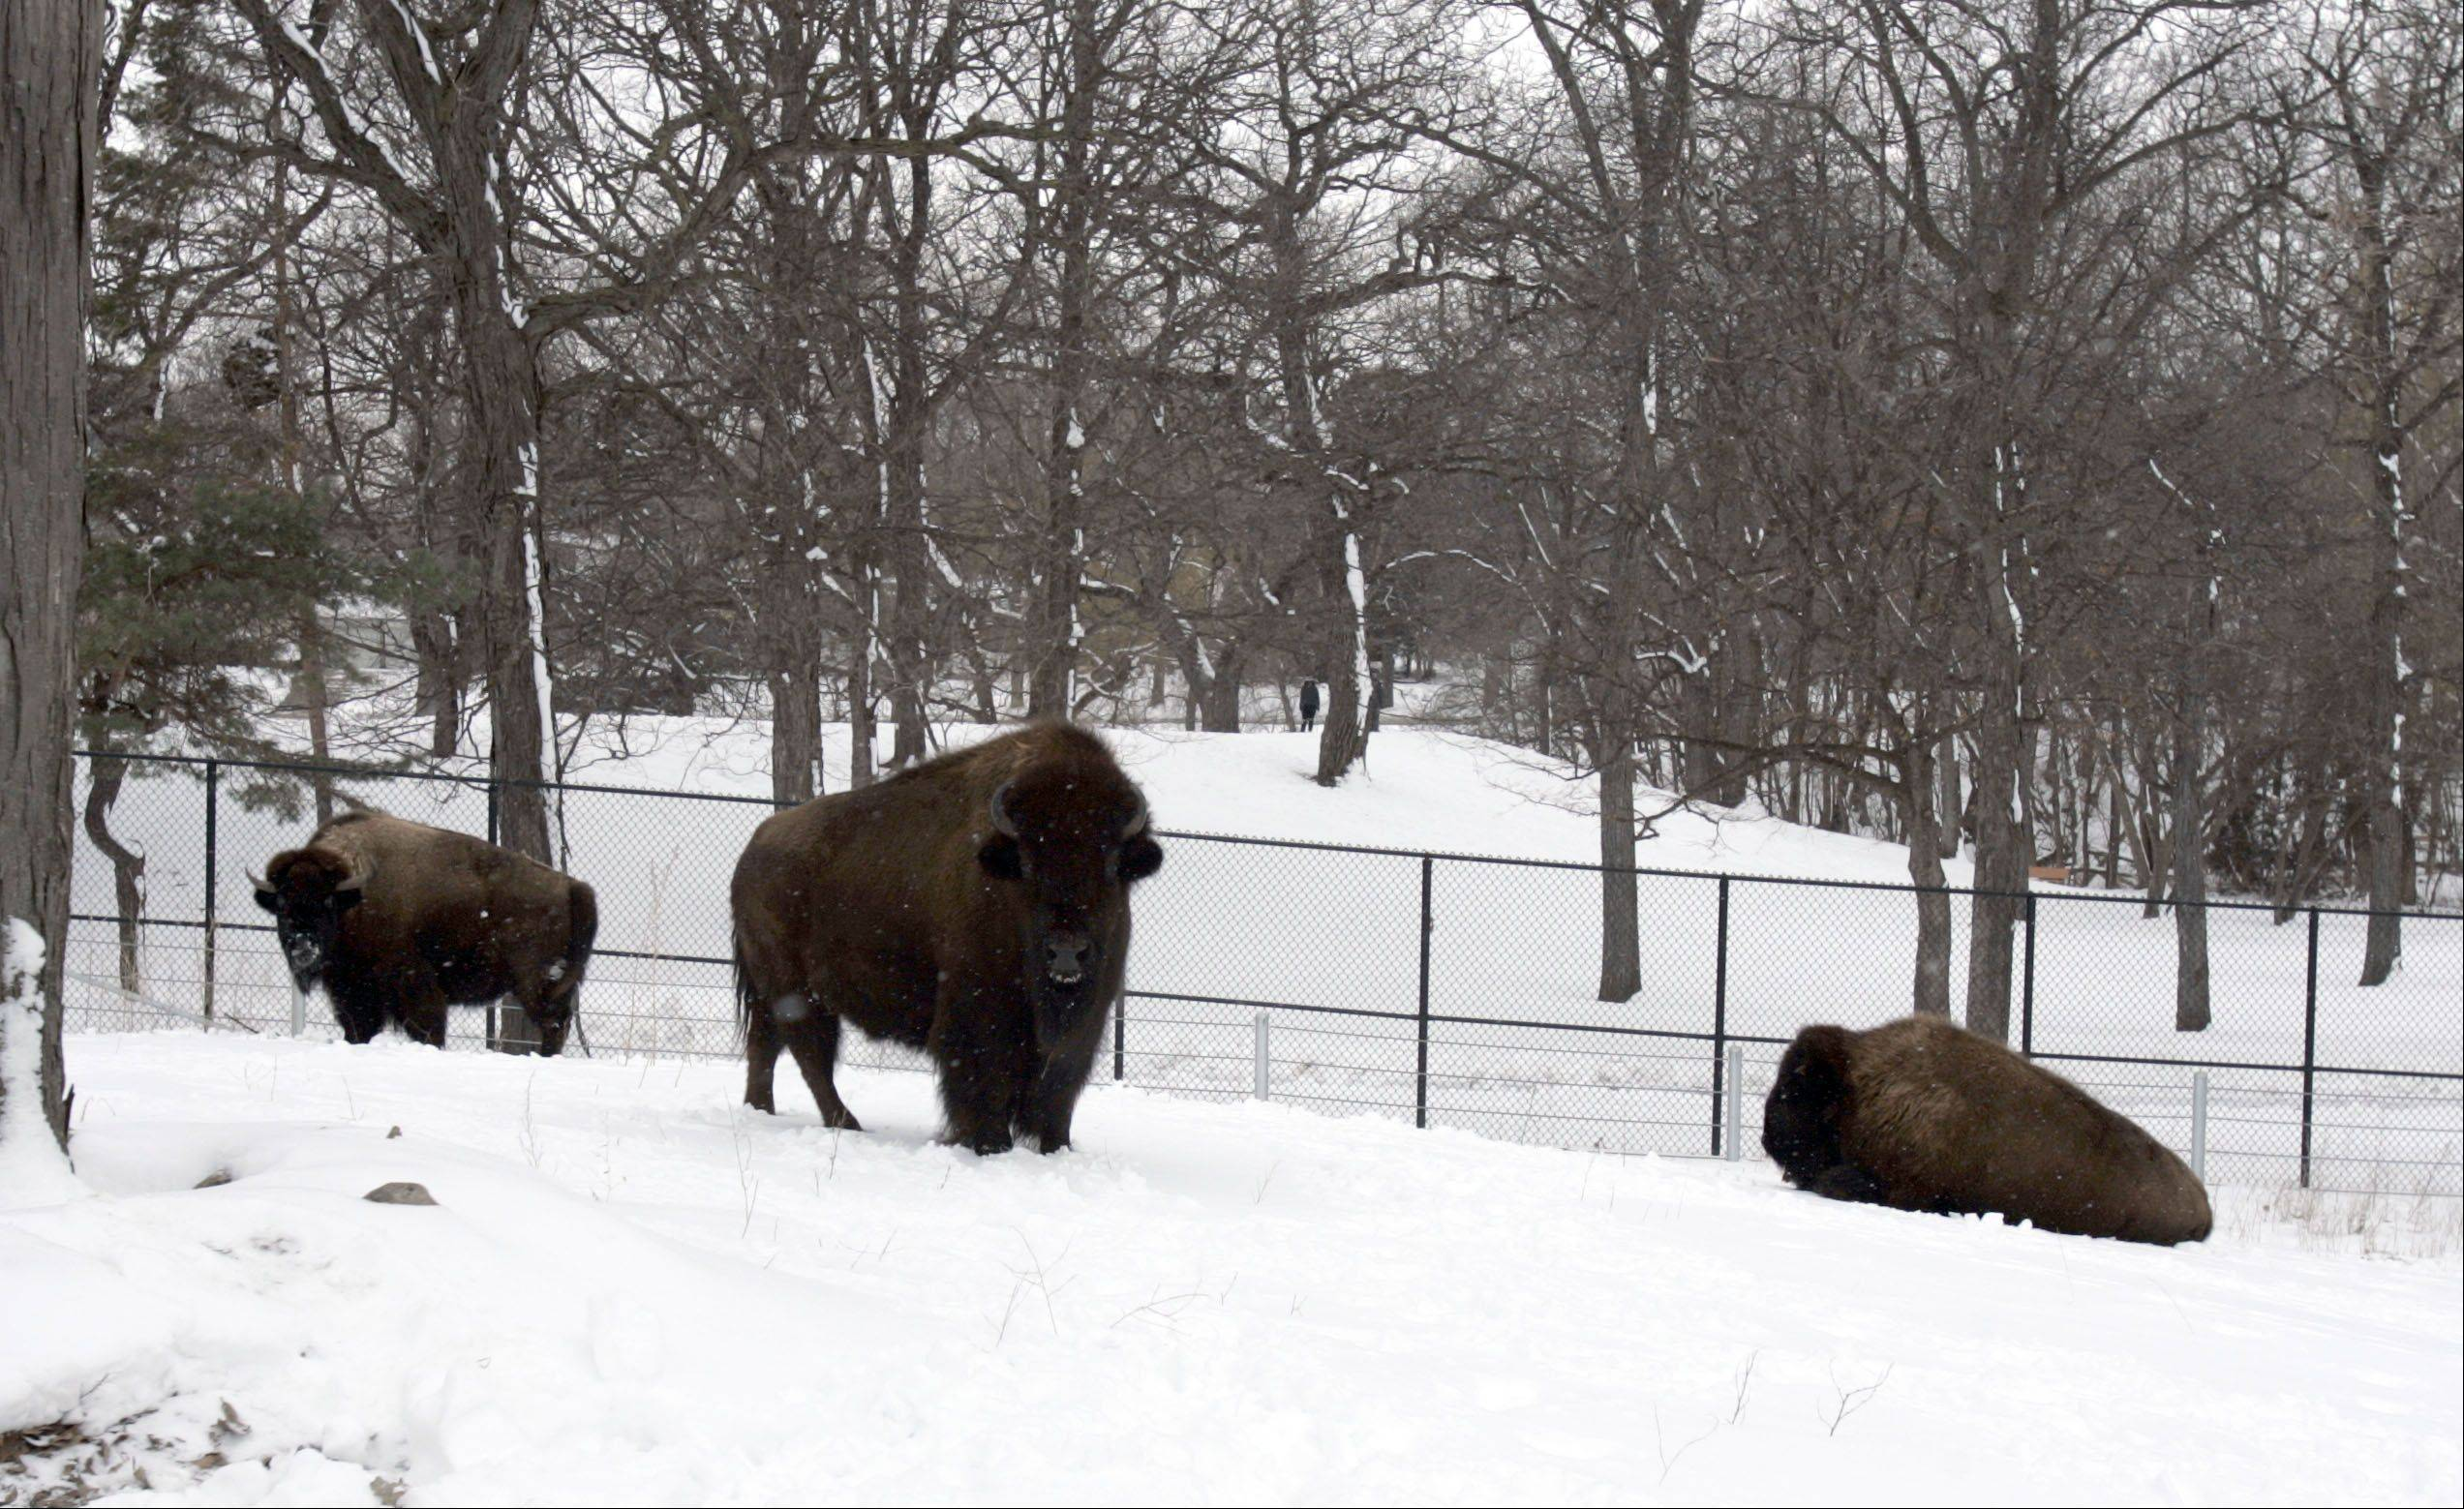 Joining Pokey, left, are two new bison, Becky in the middle and Drew on the right, which arrived at Lords Park in Elgin from Brookfield Zoo. Pokey was put down earlier this year once her health declined after she fell into a mud hole. She was 23.